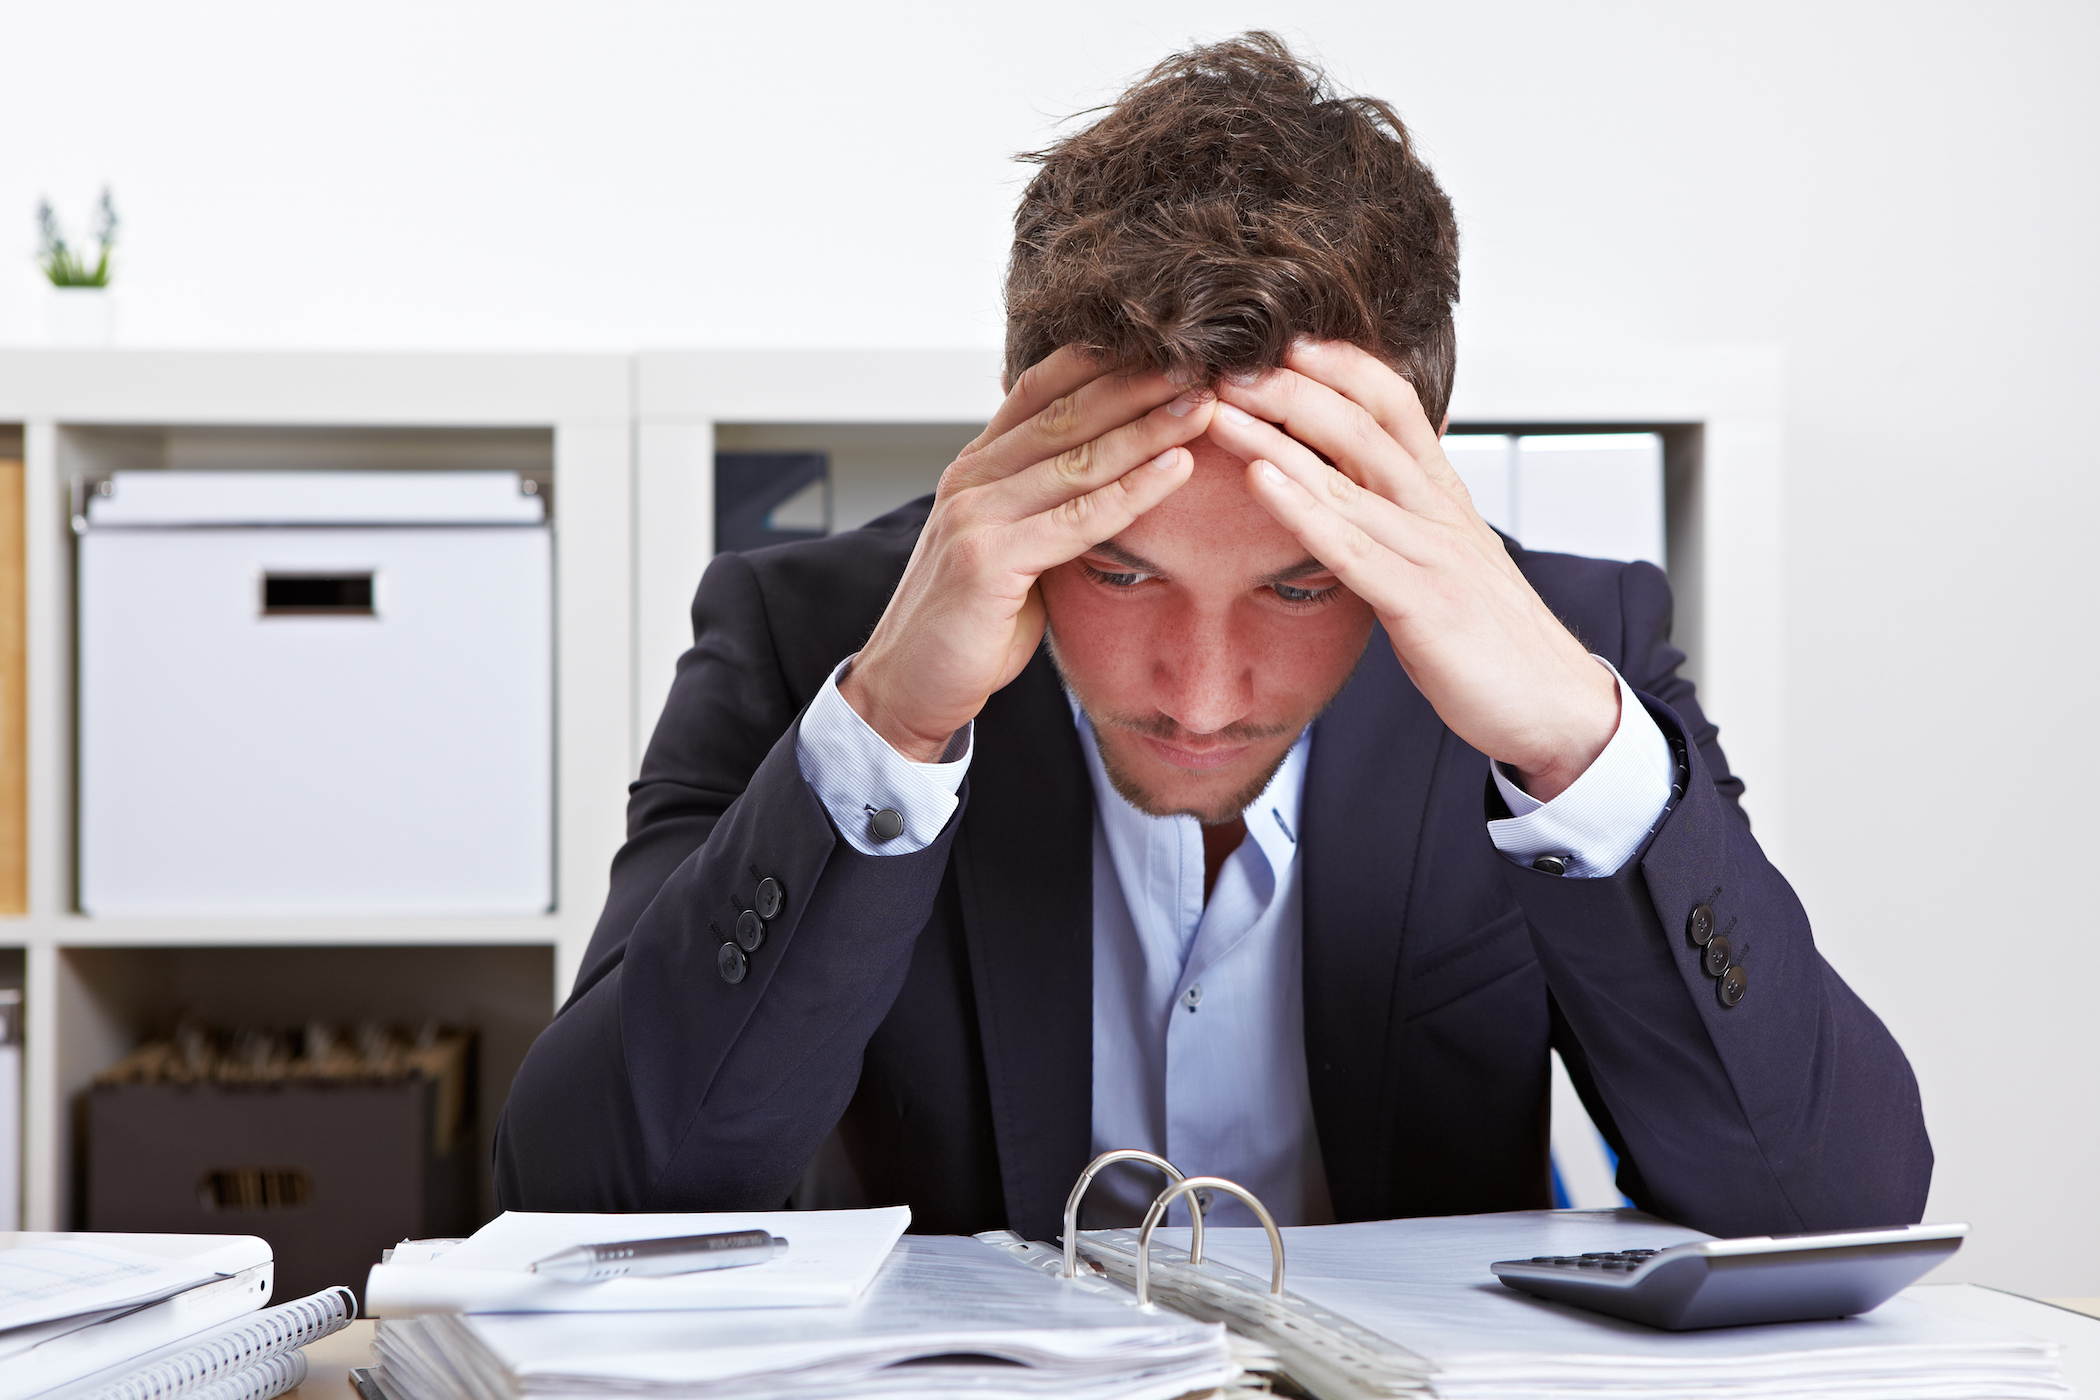 Stress causes and amplifies most relatinoship problems.